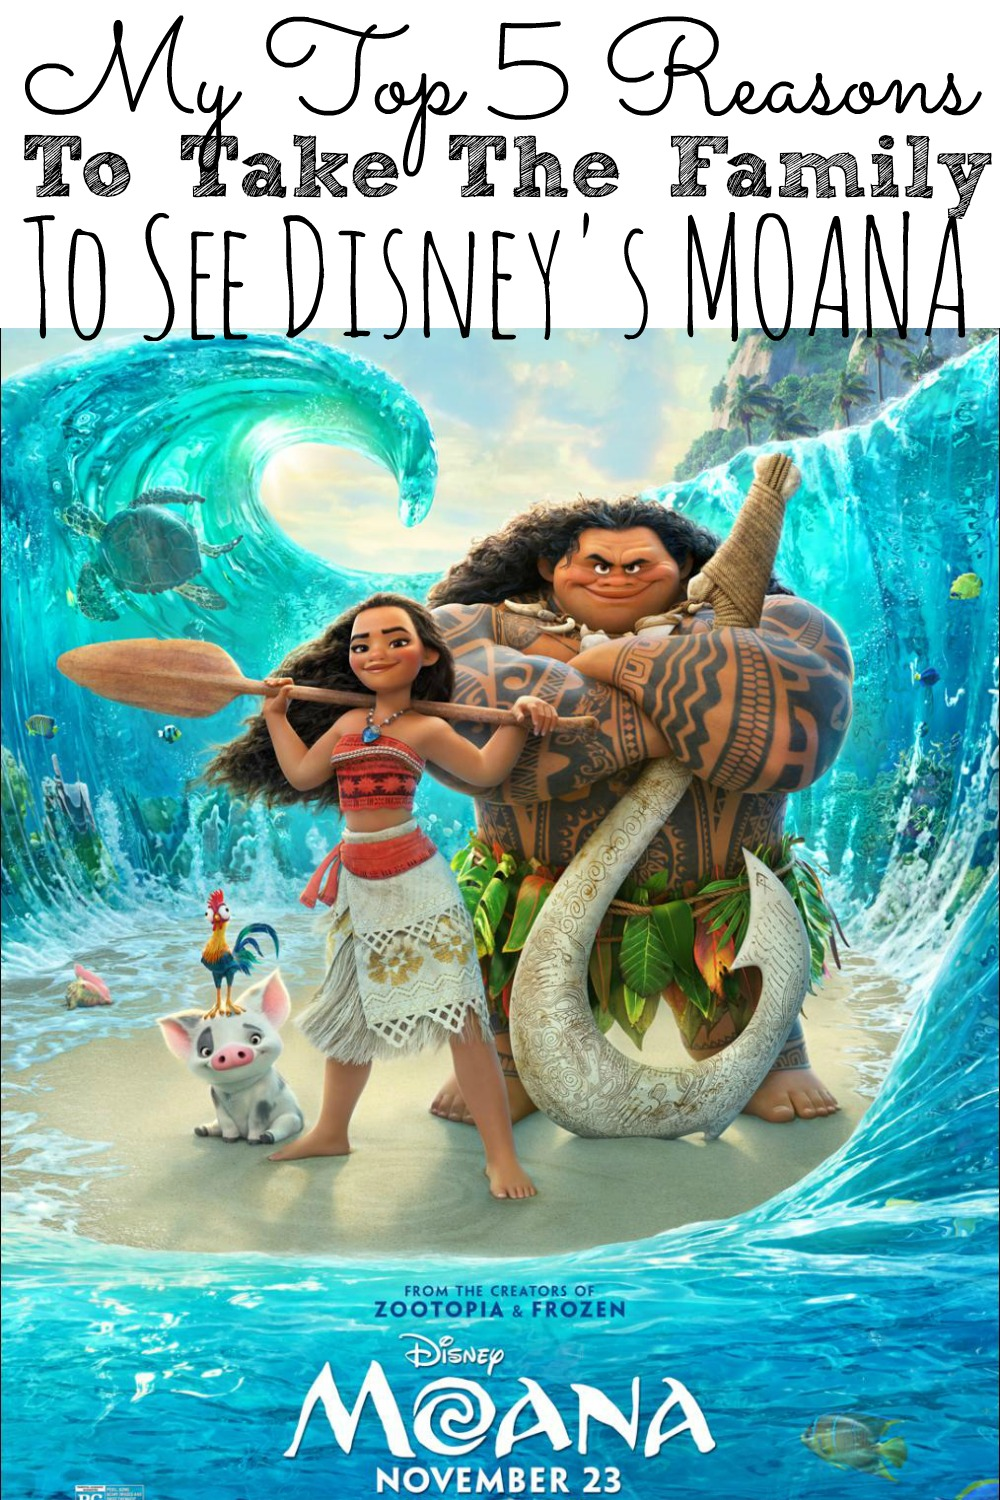 My Top 5 Reasons To Take The Family To See Moana #MoanaEvent